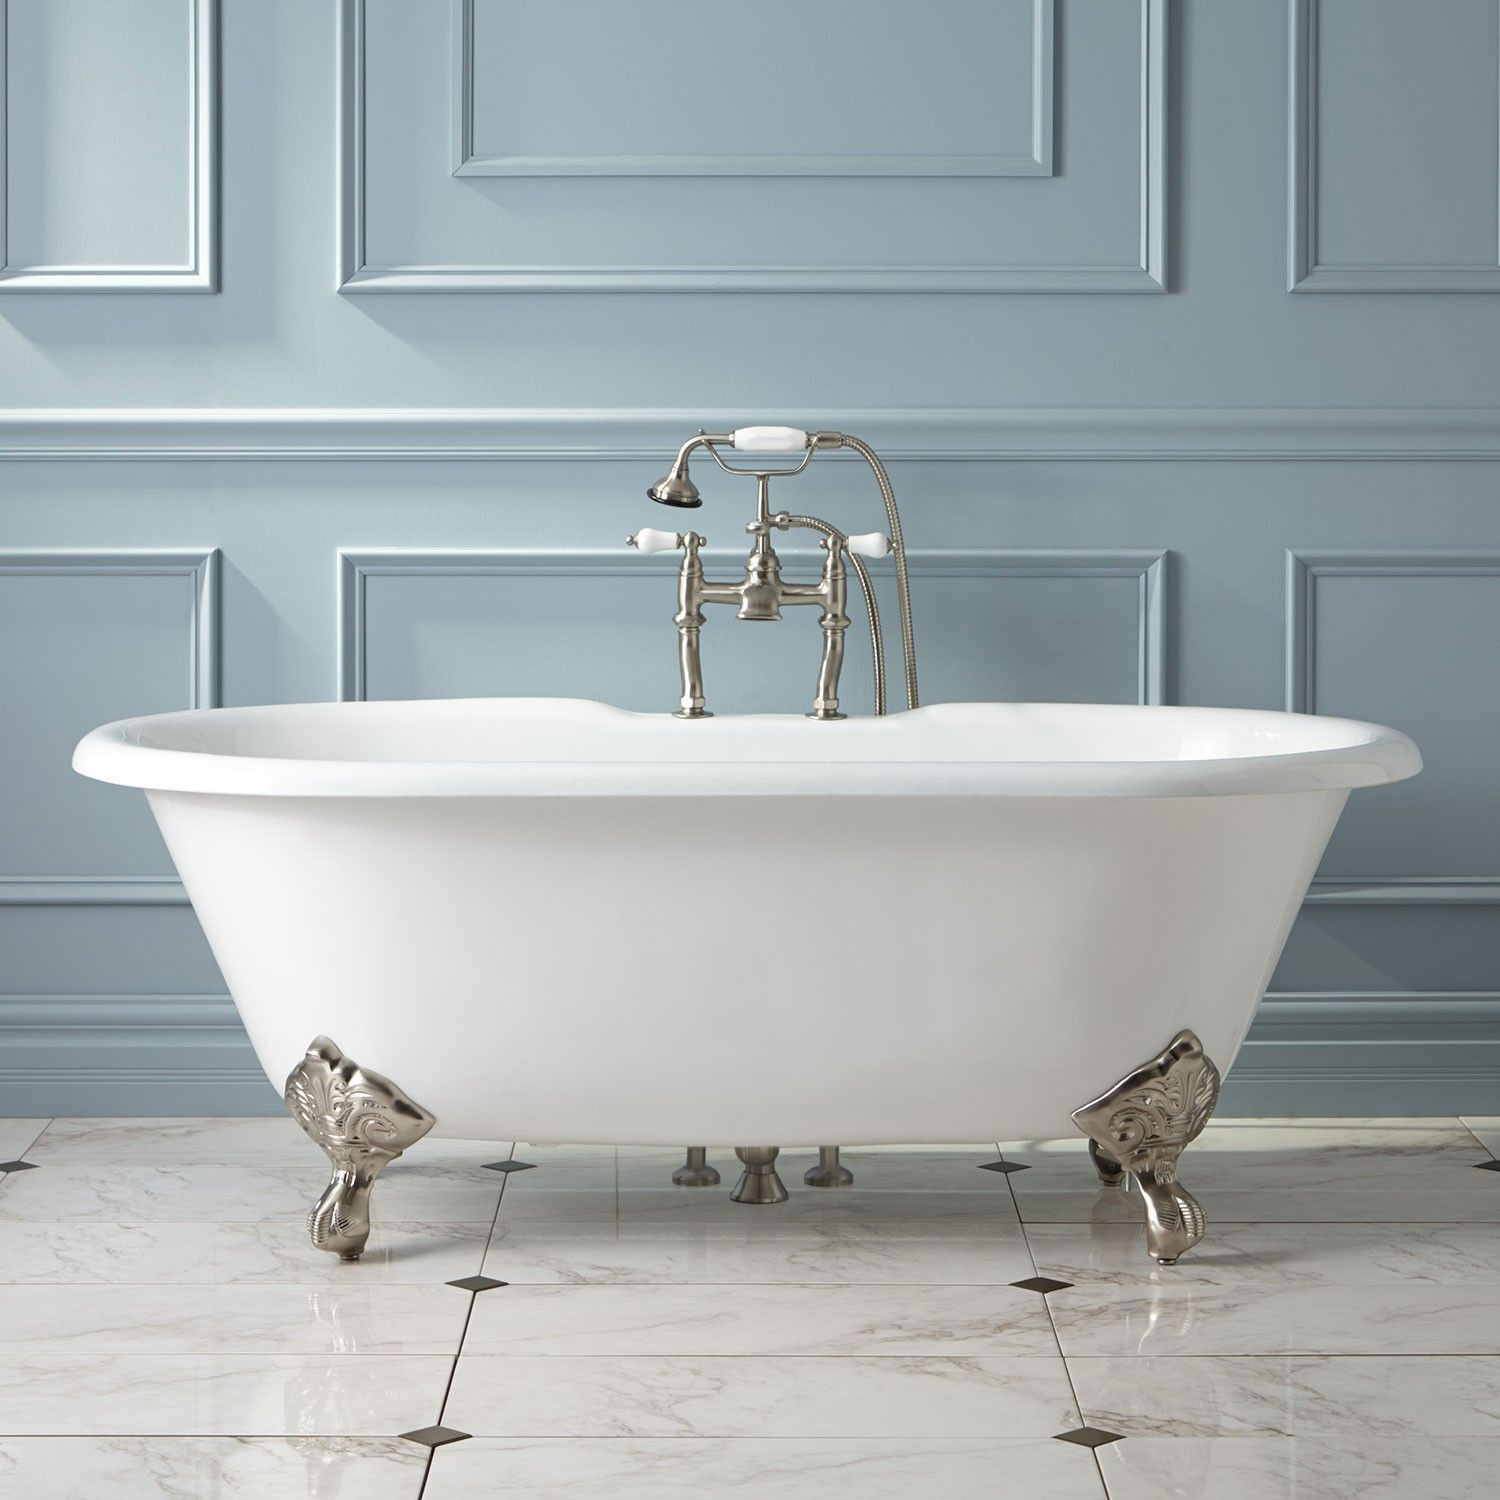 Sanford Cast Iron Clawfoot Tub - Imperial Feet | Pinterest | Tubs ...